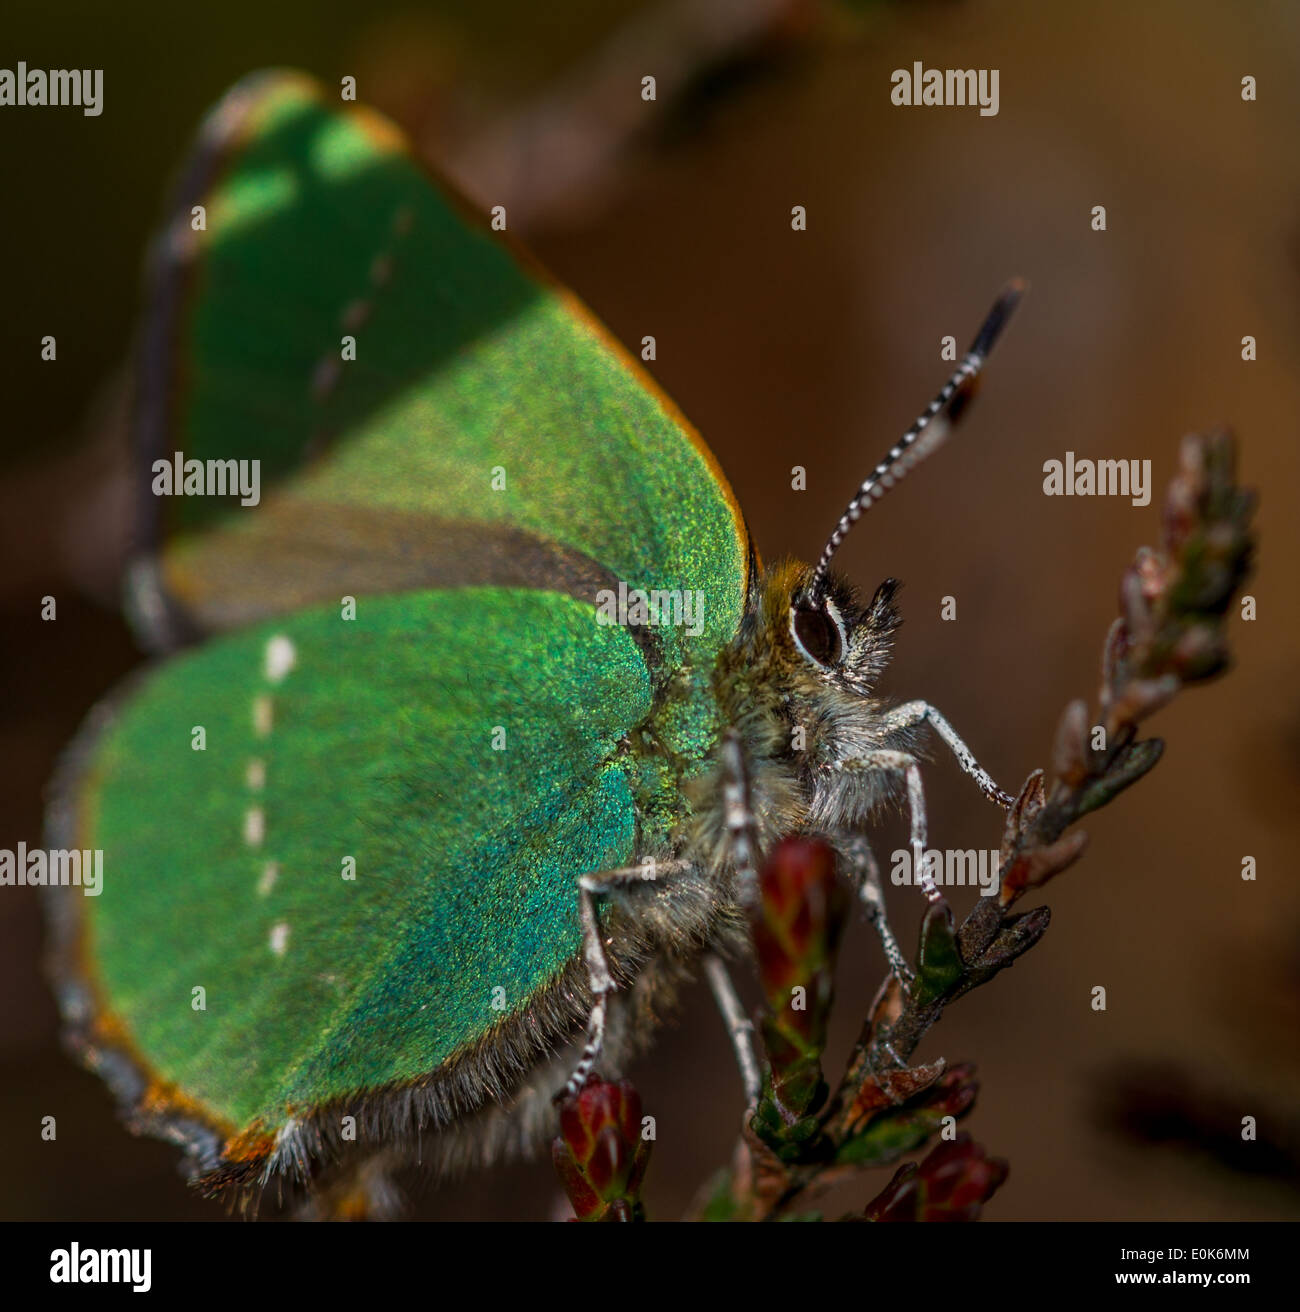 green hairstreak butterfly, Wharfedale, Yorkshire, UK - Stock Image